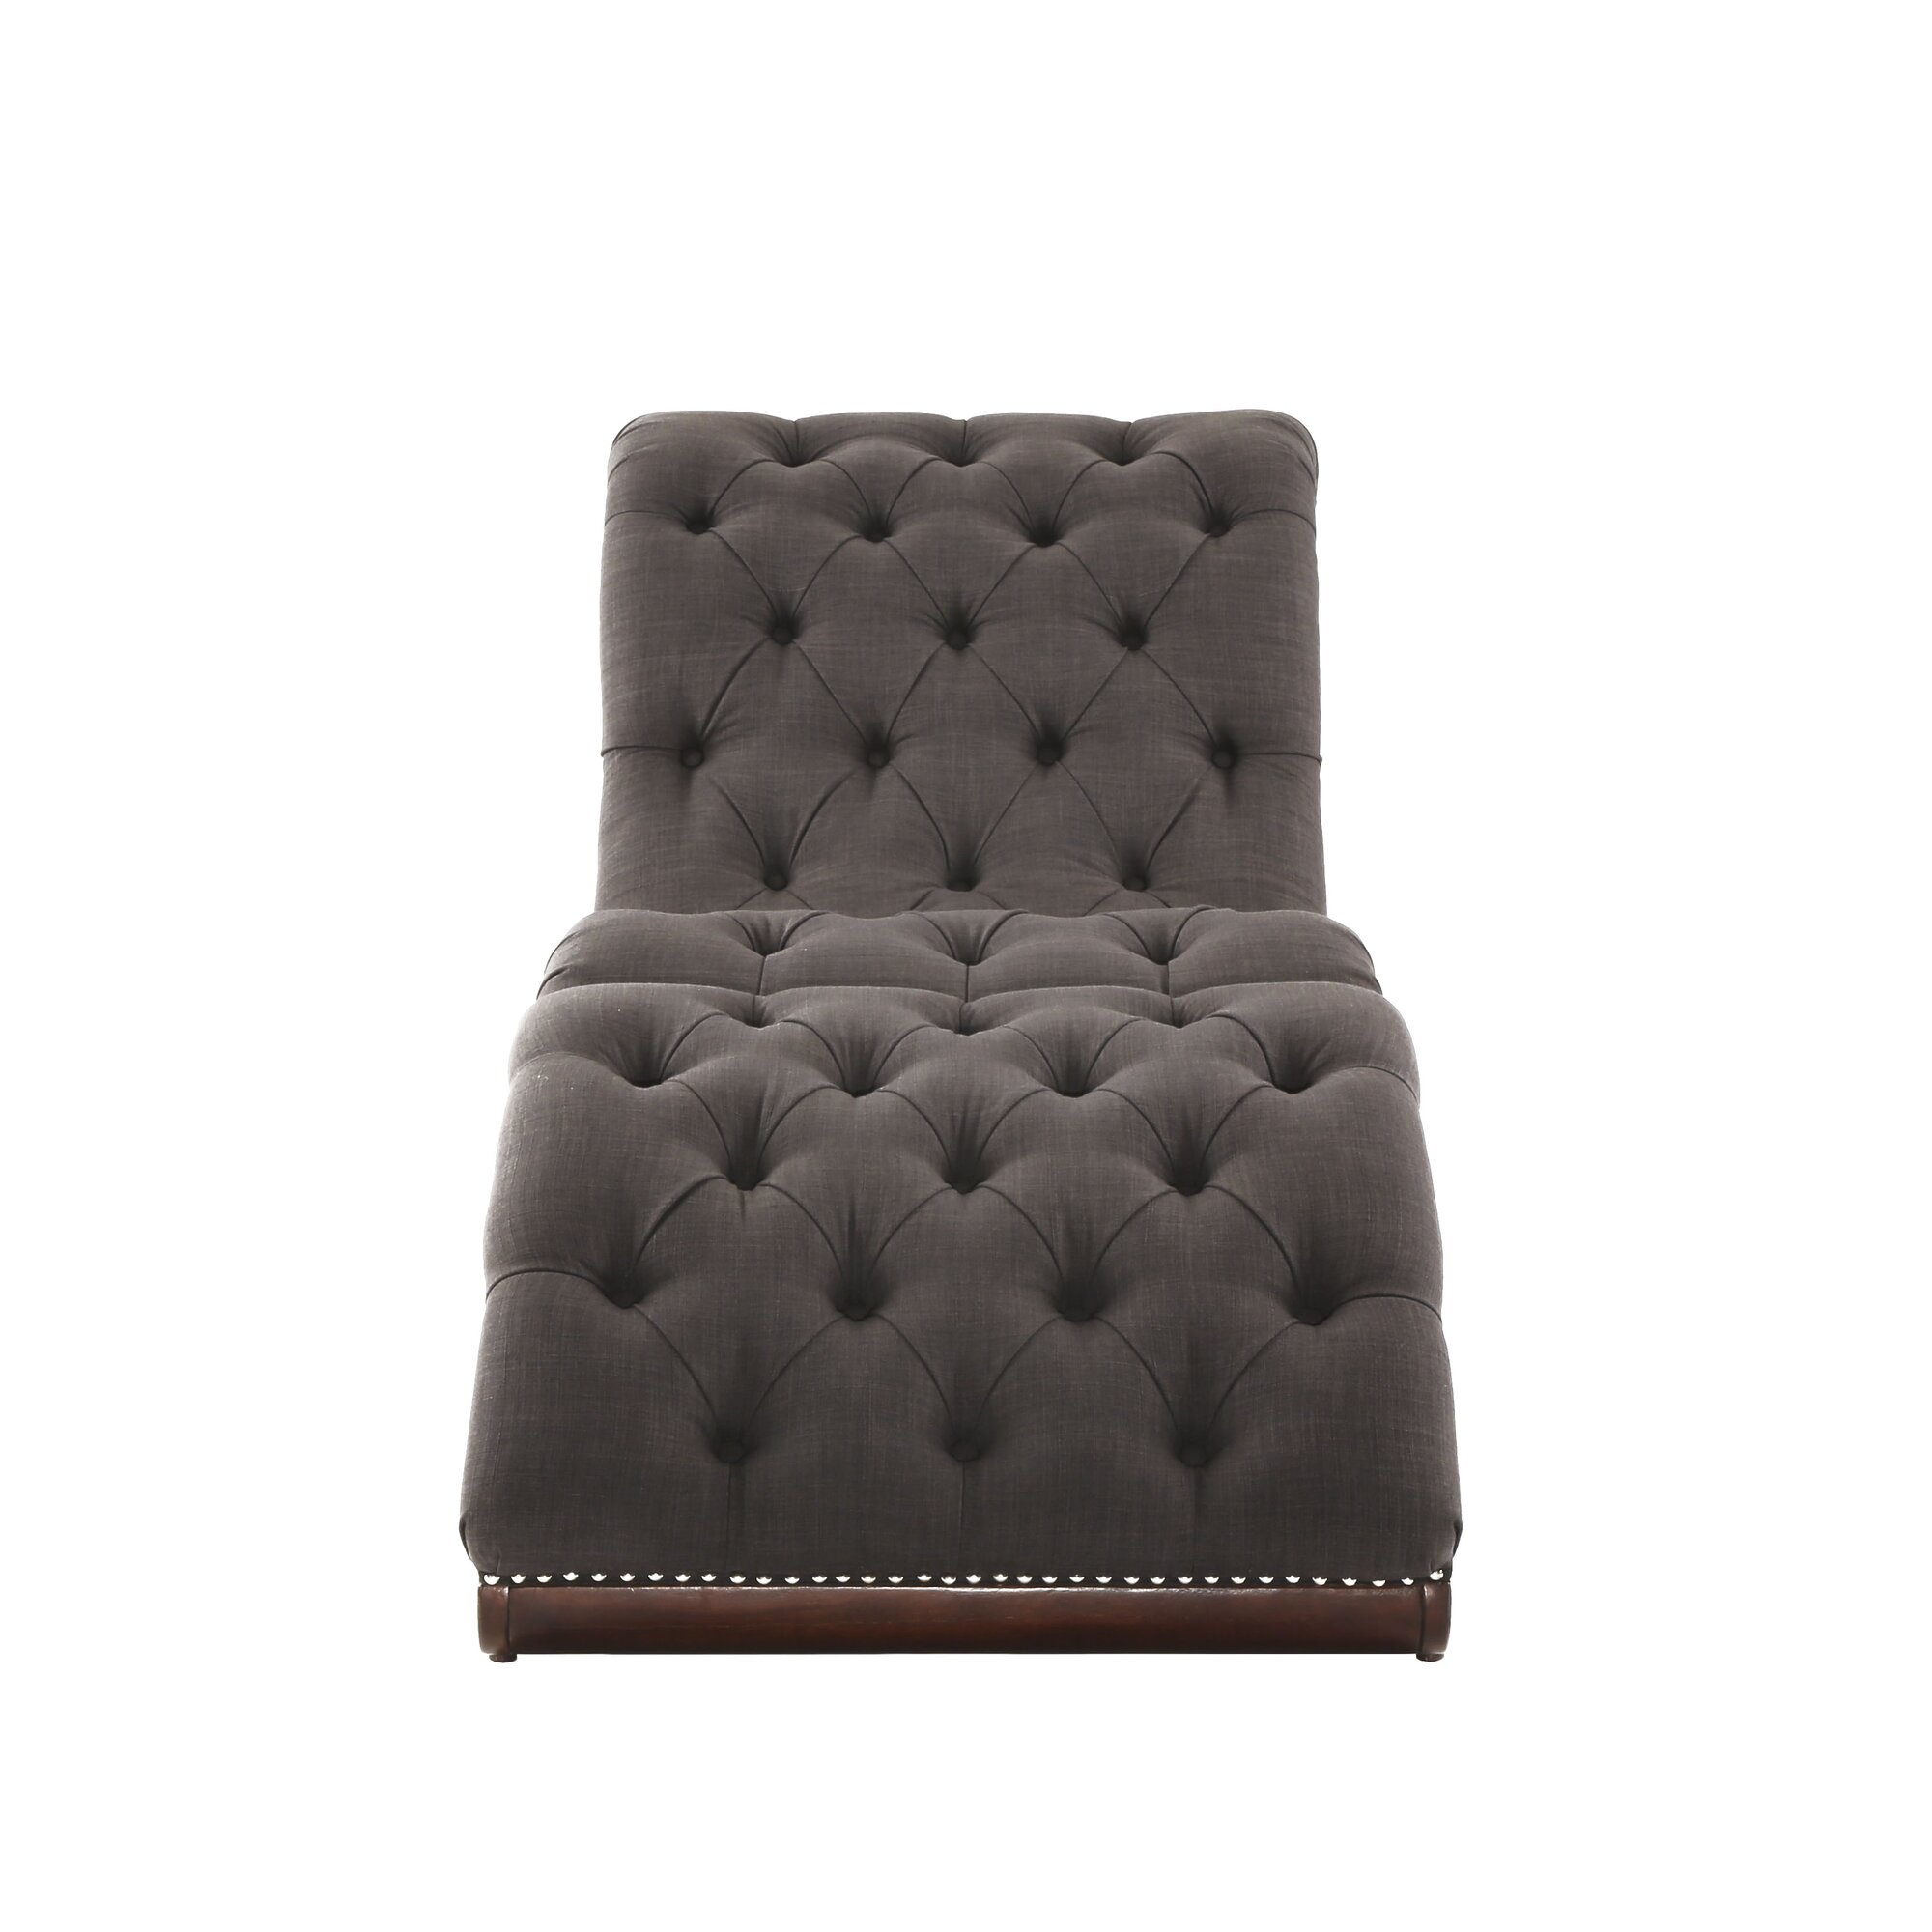 Lark Manor Celya Chaise Lounge and Ottoman Set & Reviews